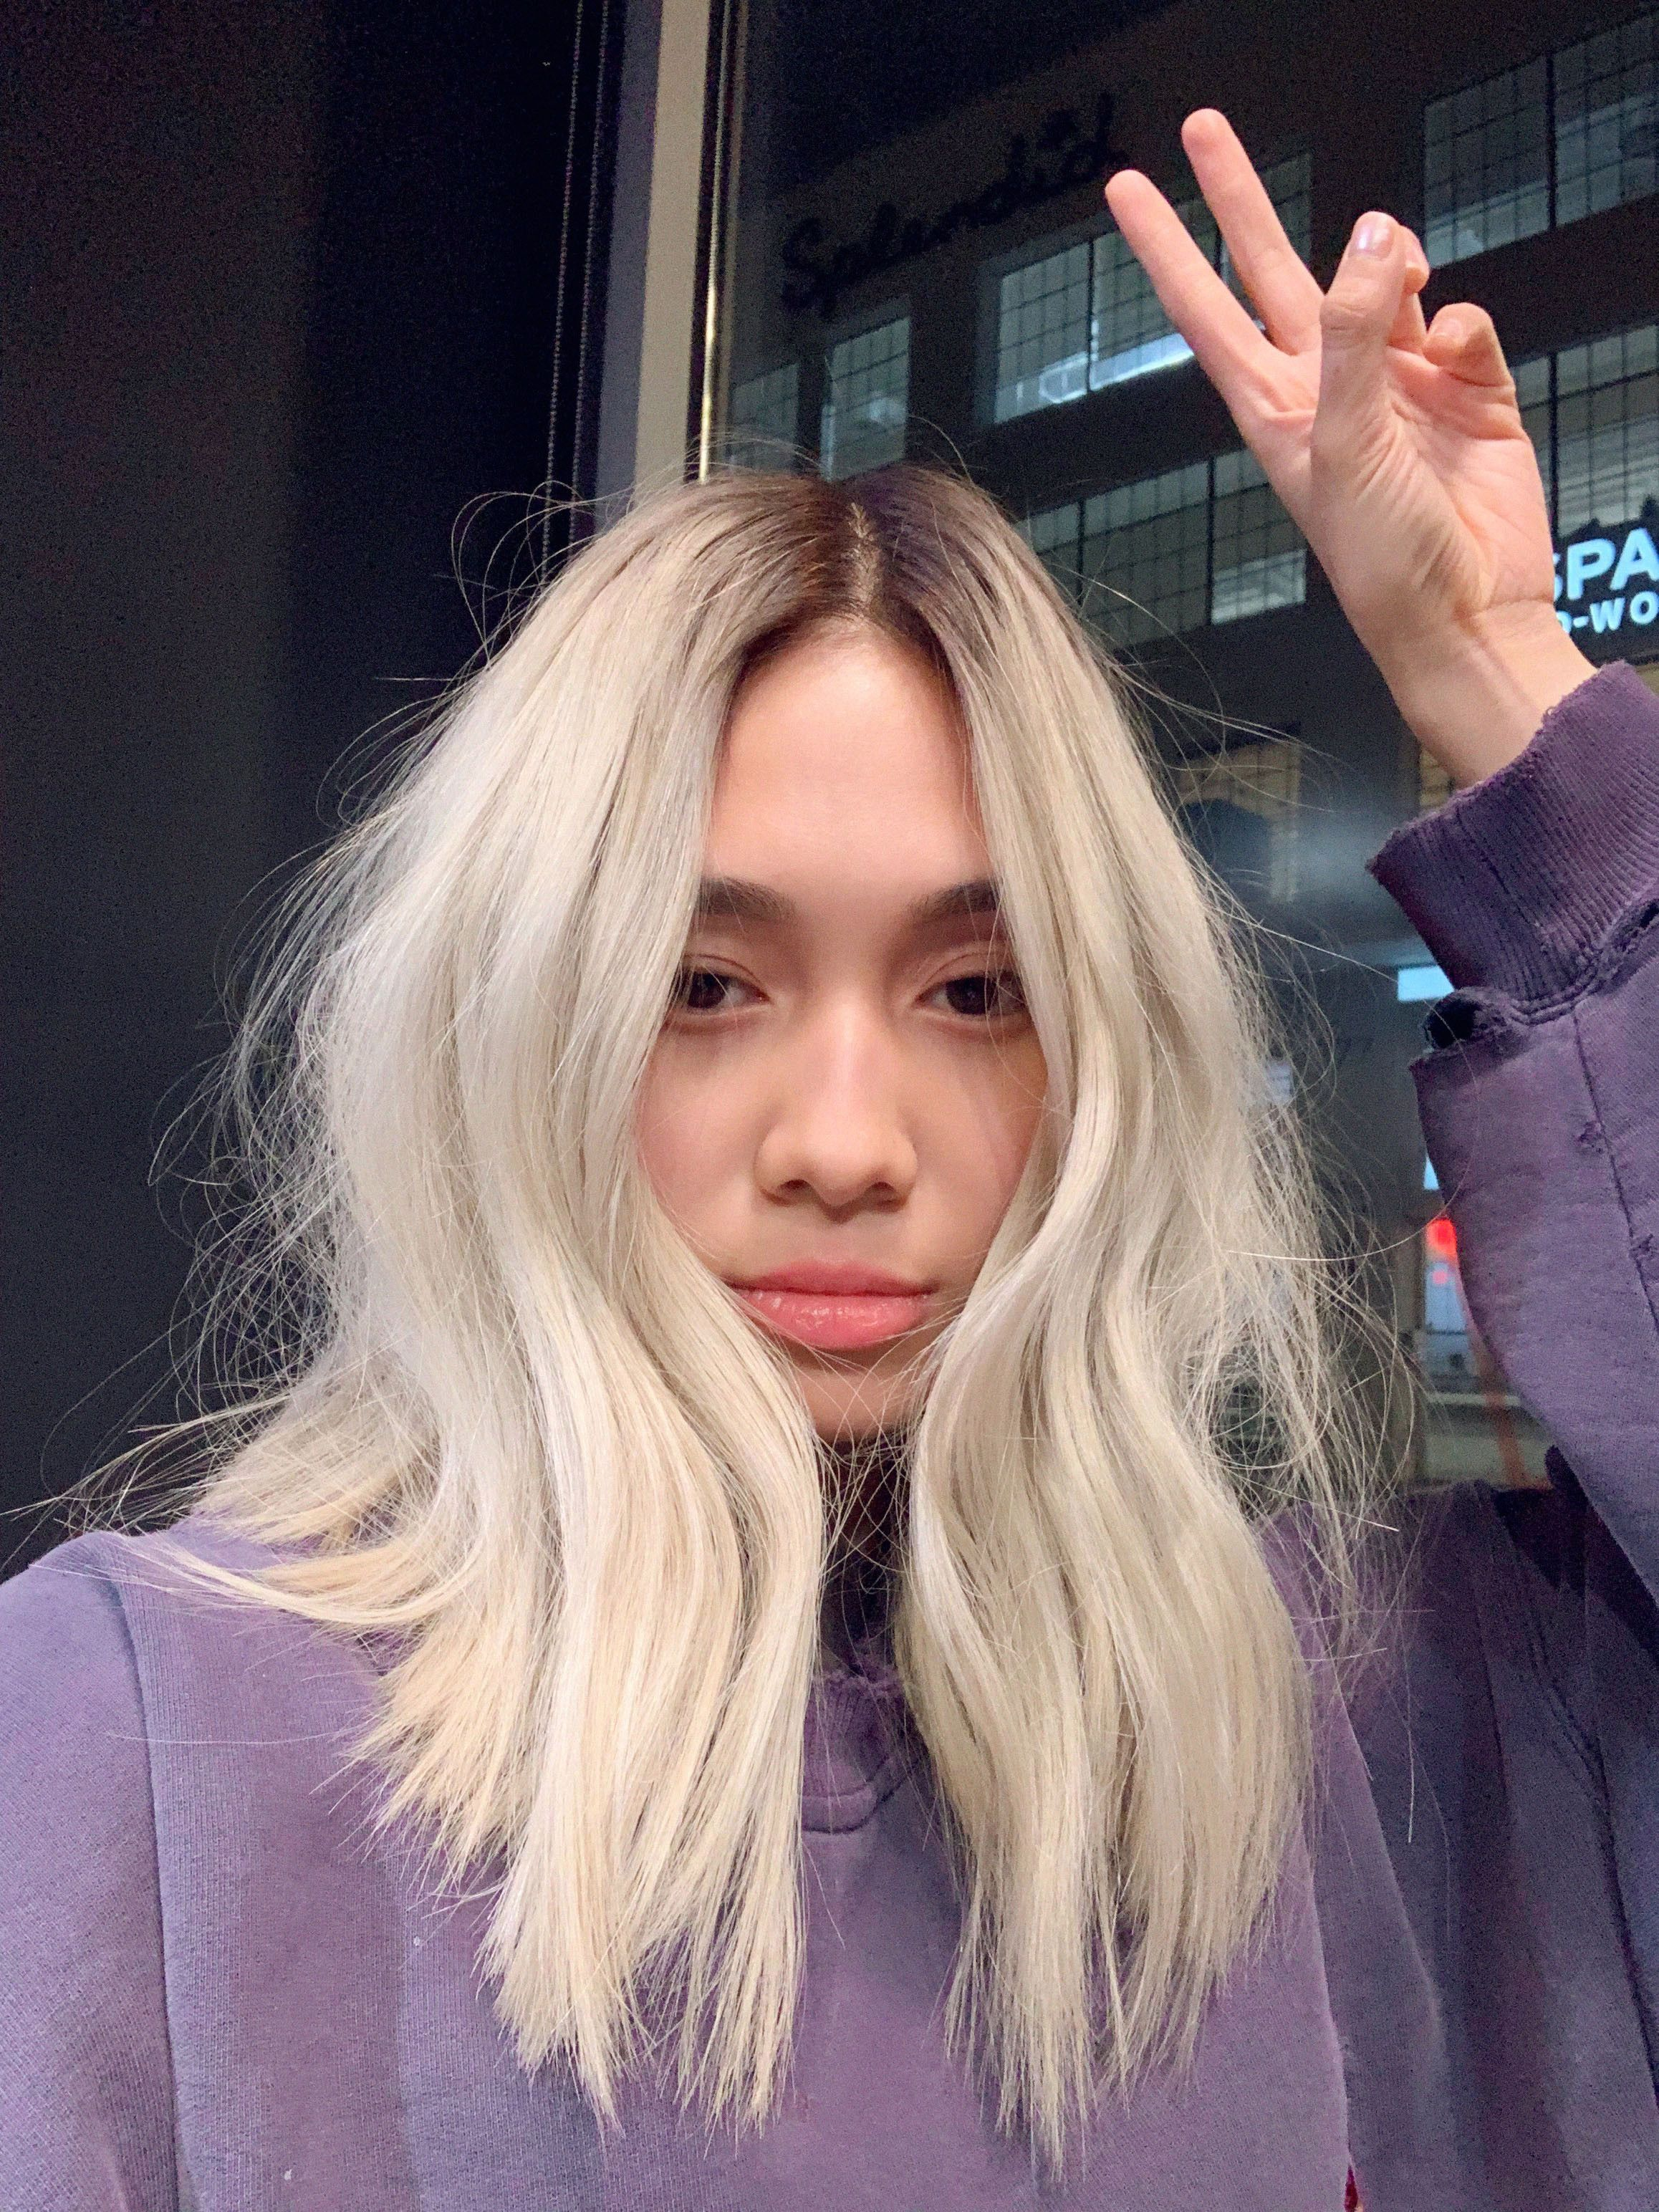 Niki S Debut Album Moonchild Is Her Own Otherworldly Safe Space In 2020 Hair Inspo Color Hair Color Chart Long Hair Styles